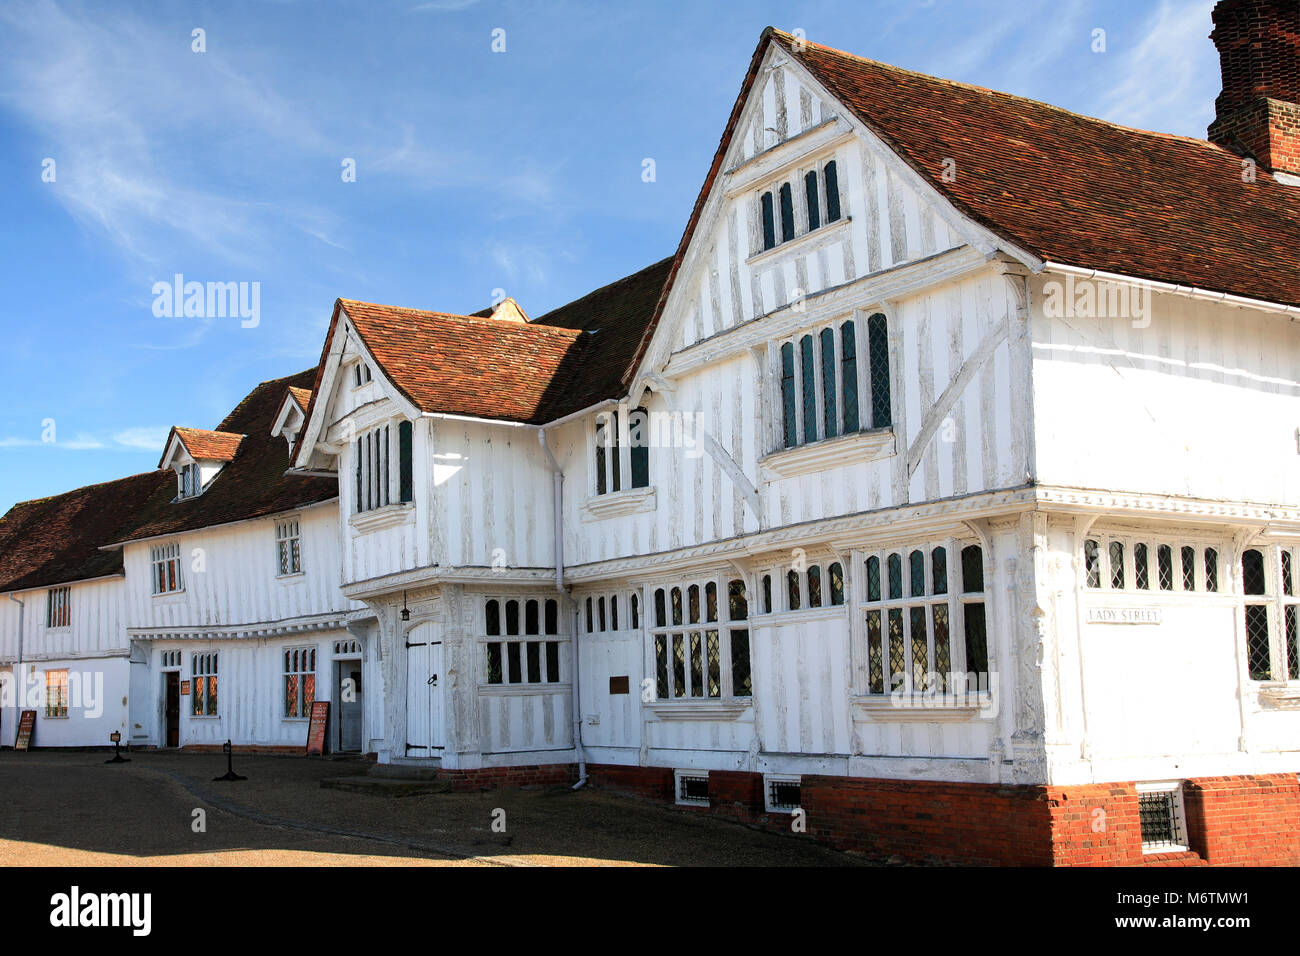 The Corpus Christi Guildhall, Market square, Lavenham village, Suffolk County, England, Britain. Built in the 16th - Stock Image